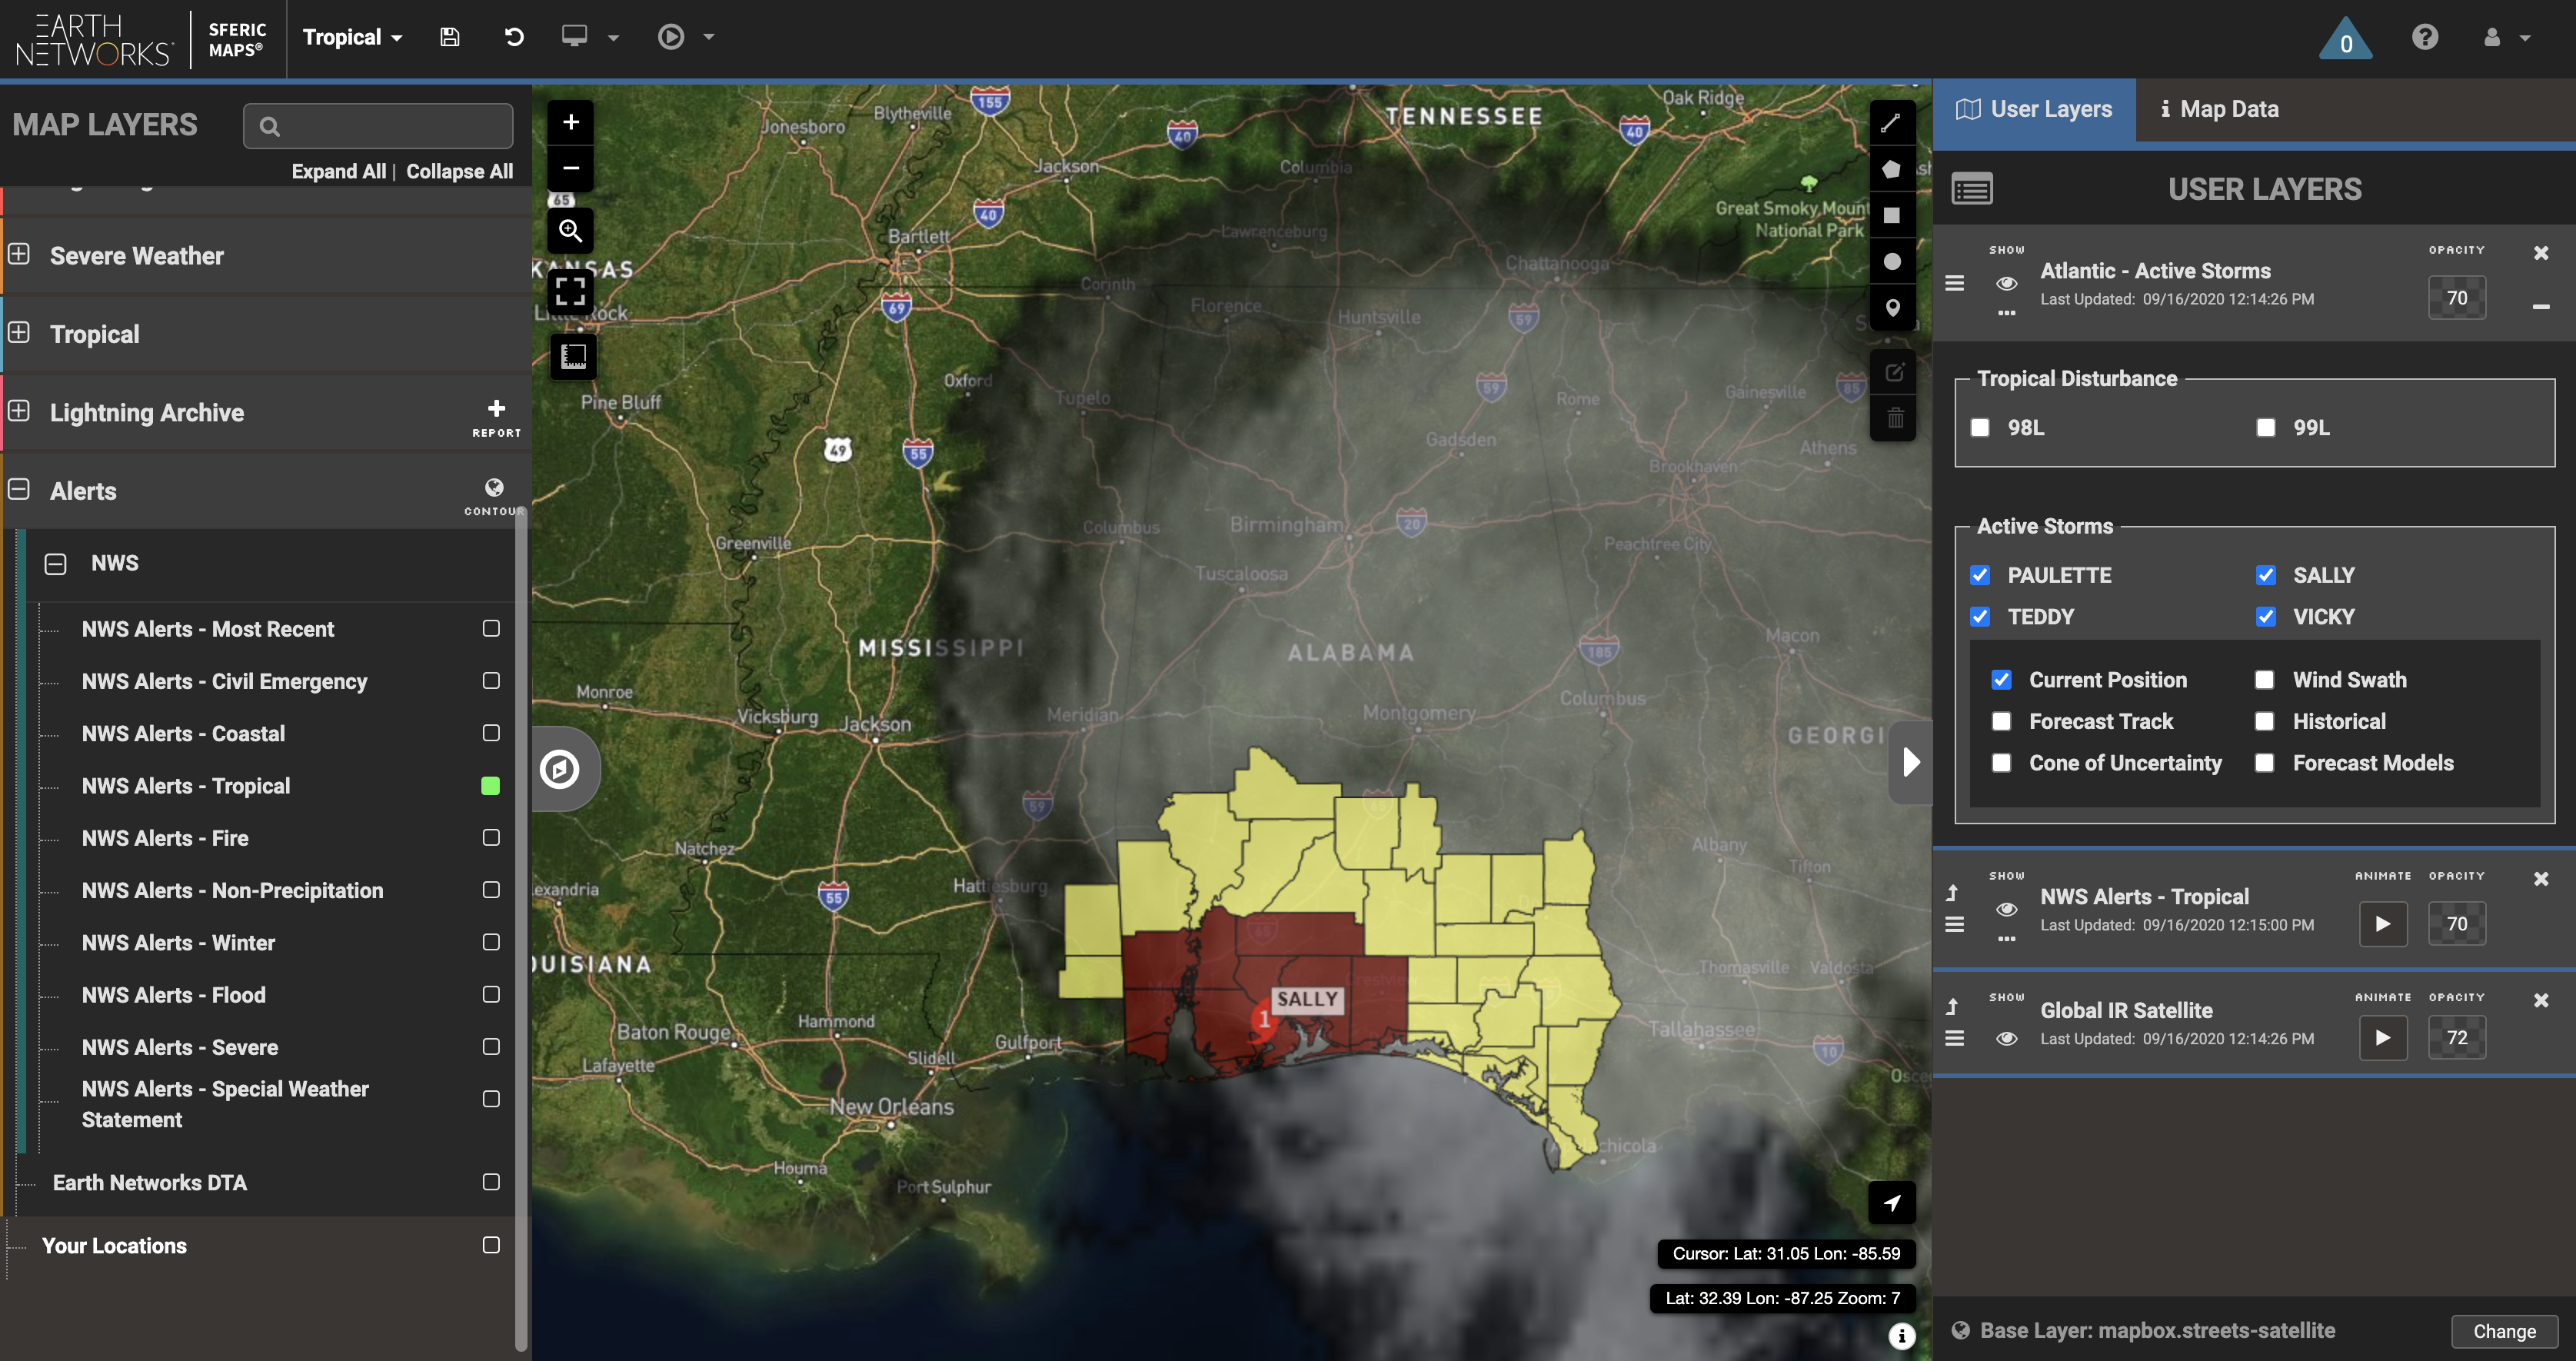 Hurricane Sally Watches and Warnings on September 16, 2020 visualized on Sferic Maps professional weather map